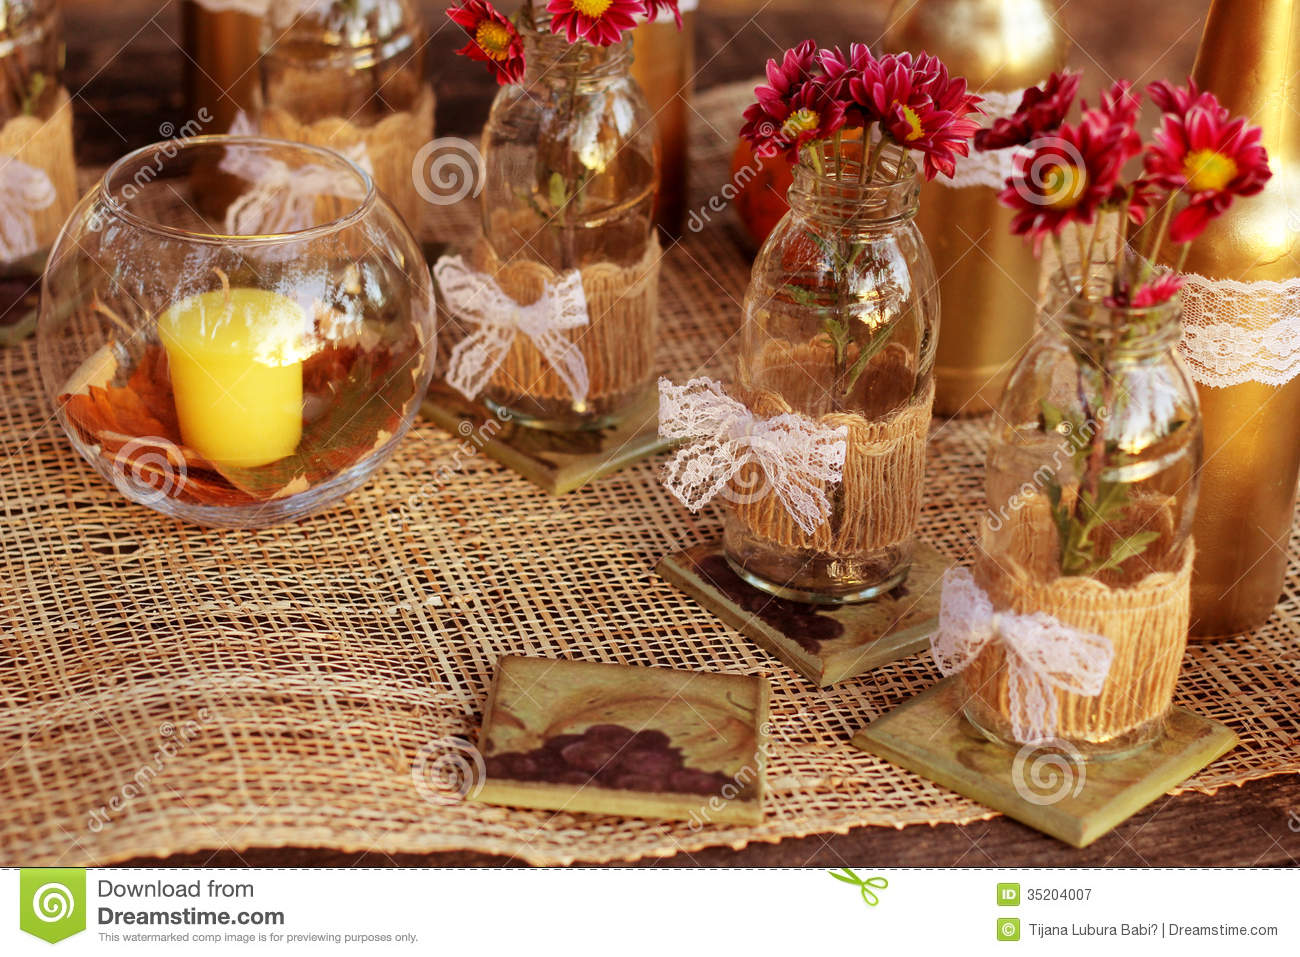 Fall and table decorations in nature royalty free stock photography image - Decoration table nature ...